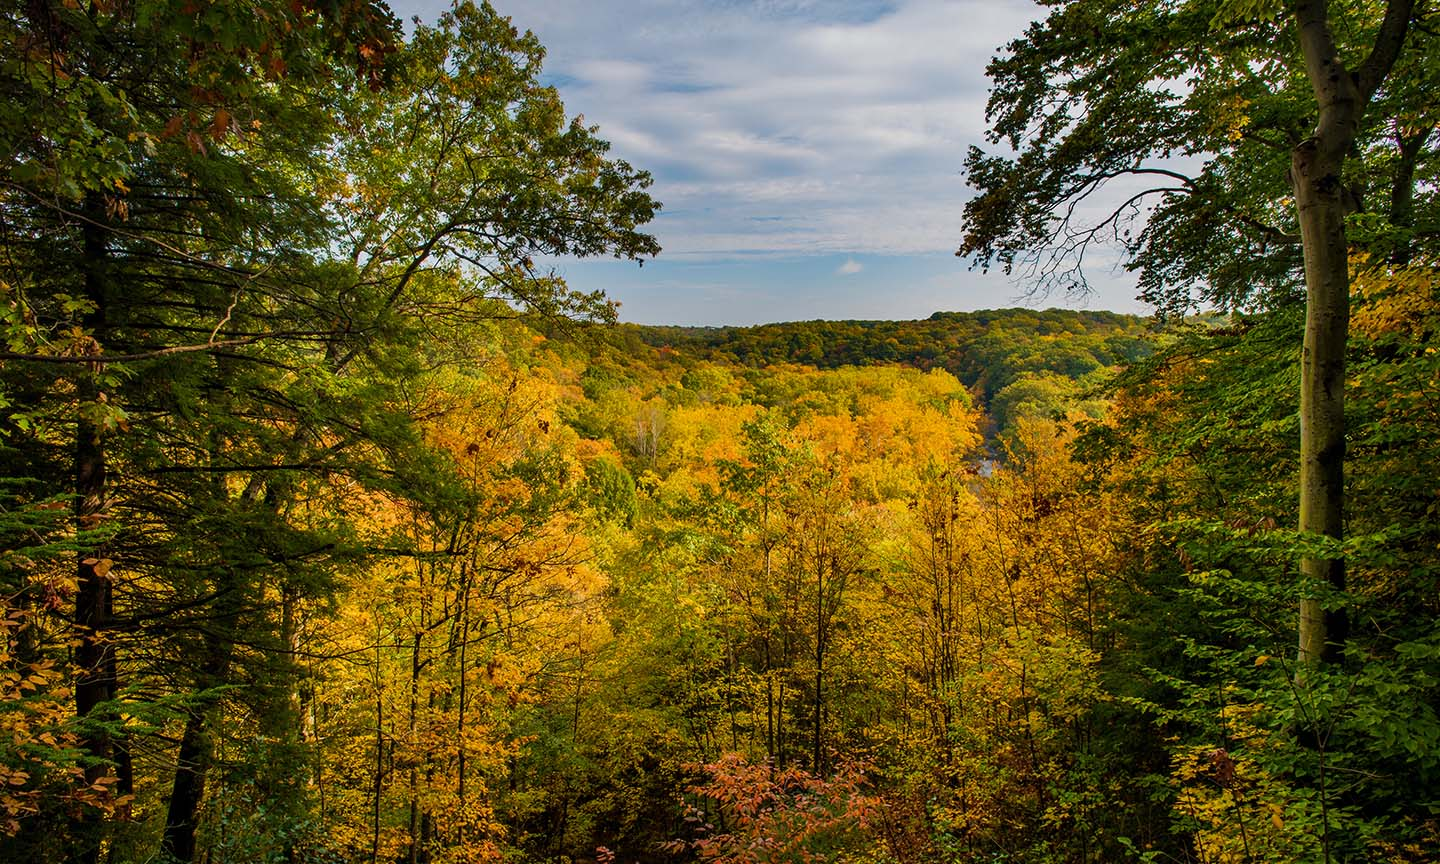 Tinkers Creek Gorge Scenic Overlook